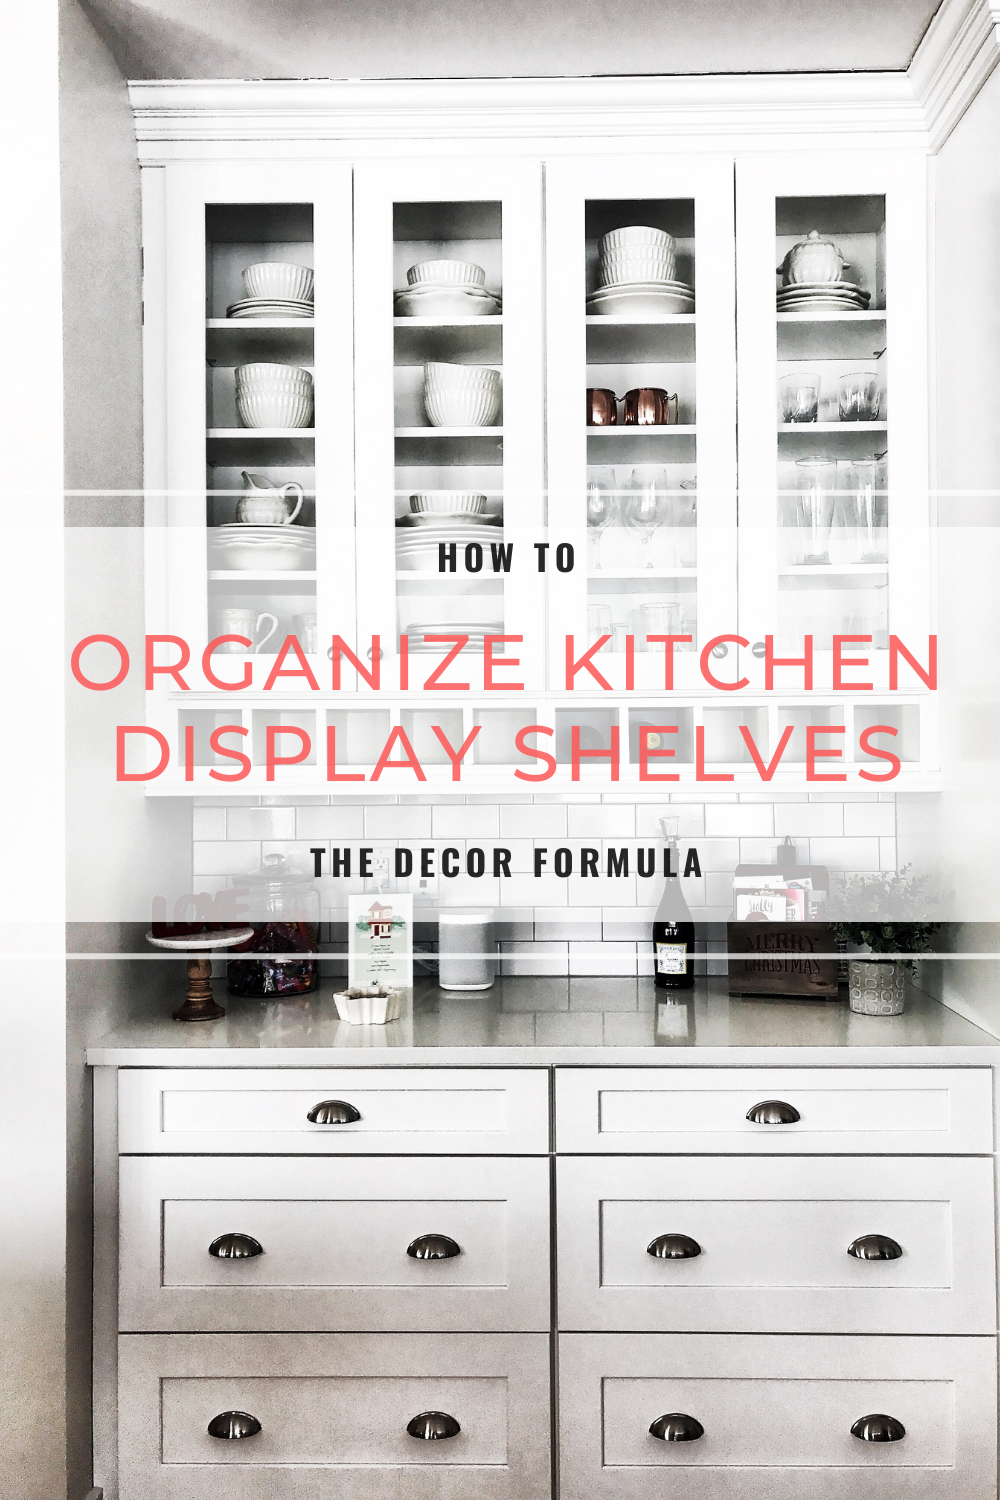 Ordinaire Display Shelf Organization: How To Organize Kitchen Display Cabinets